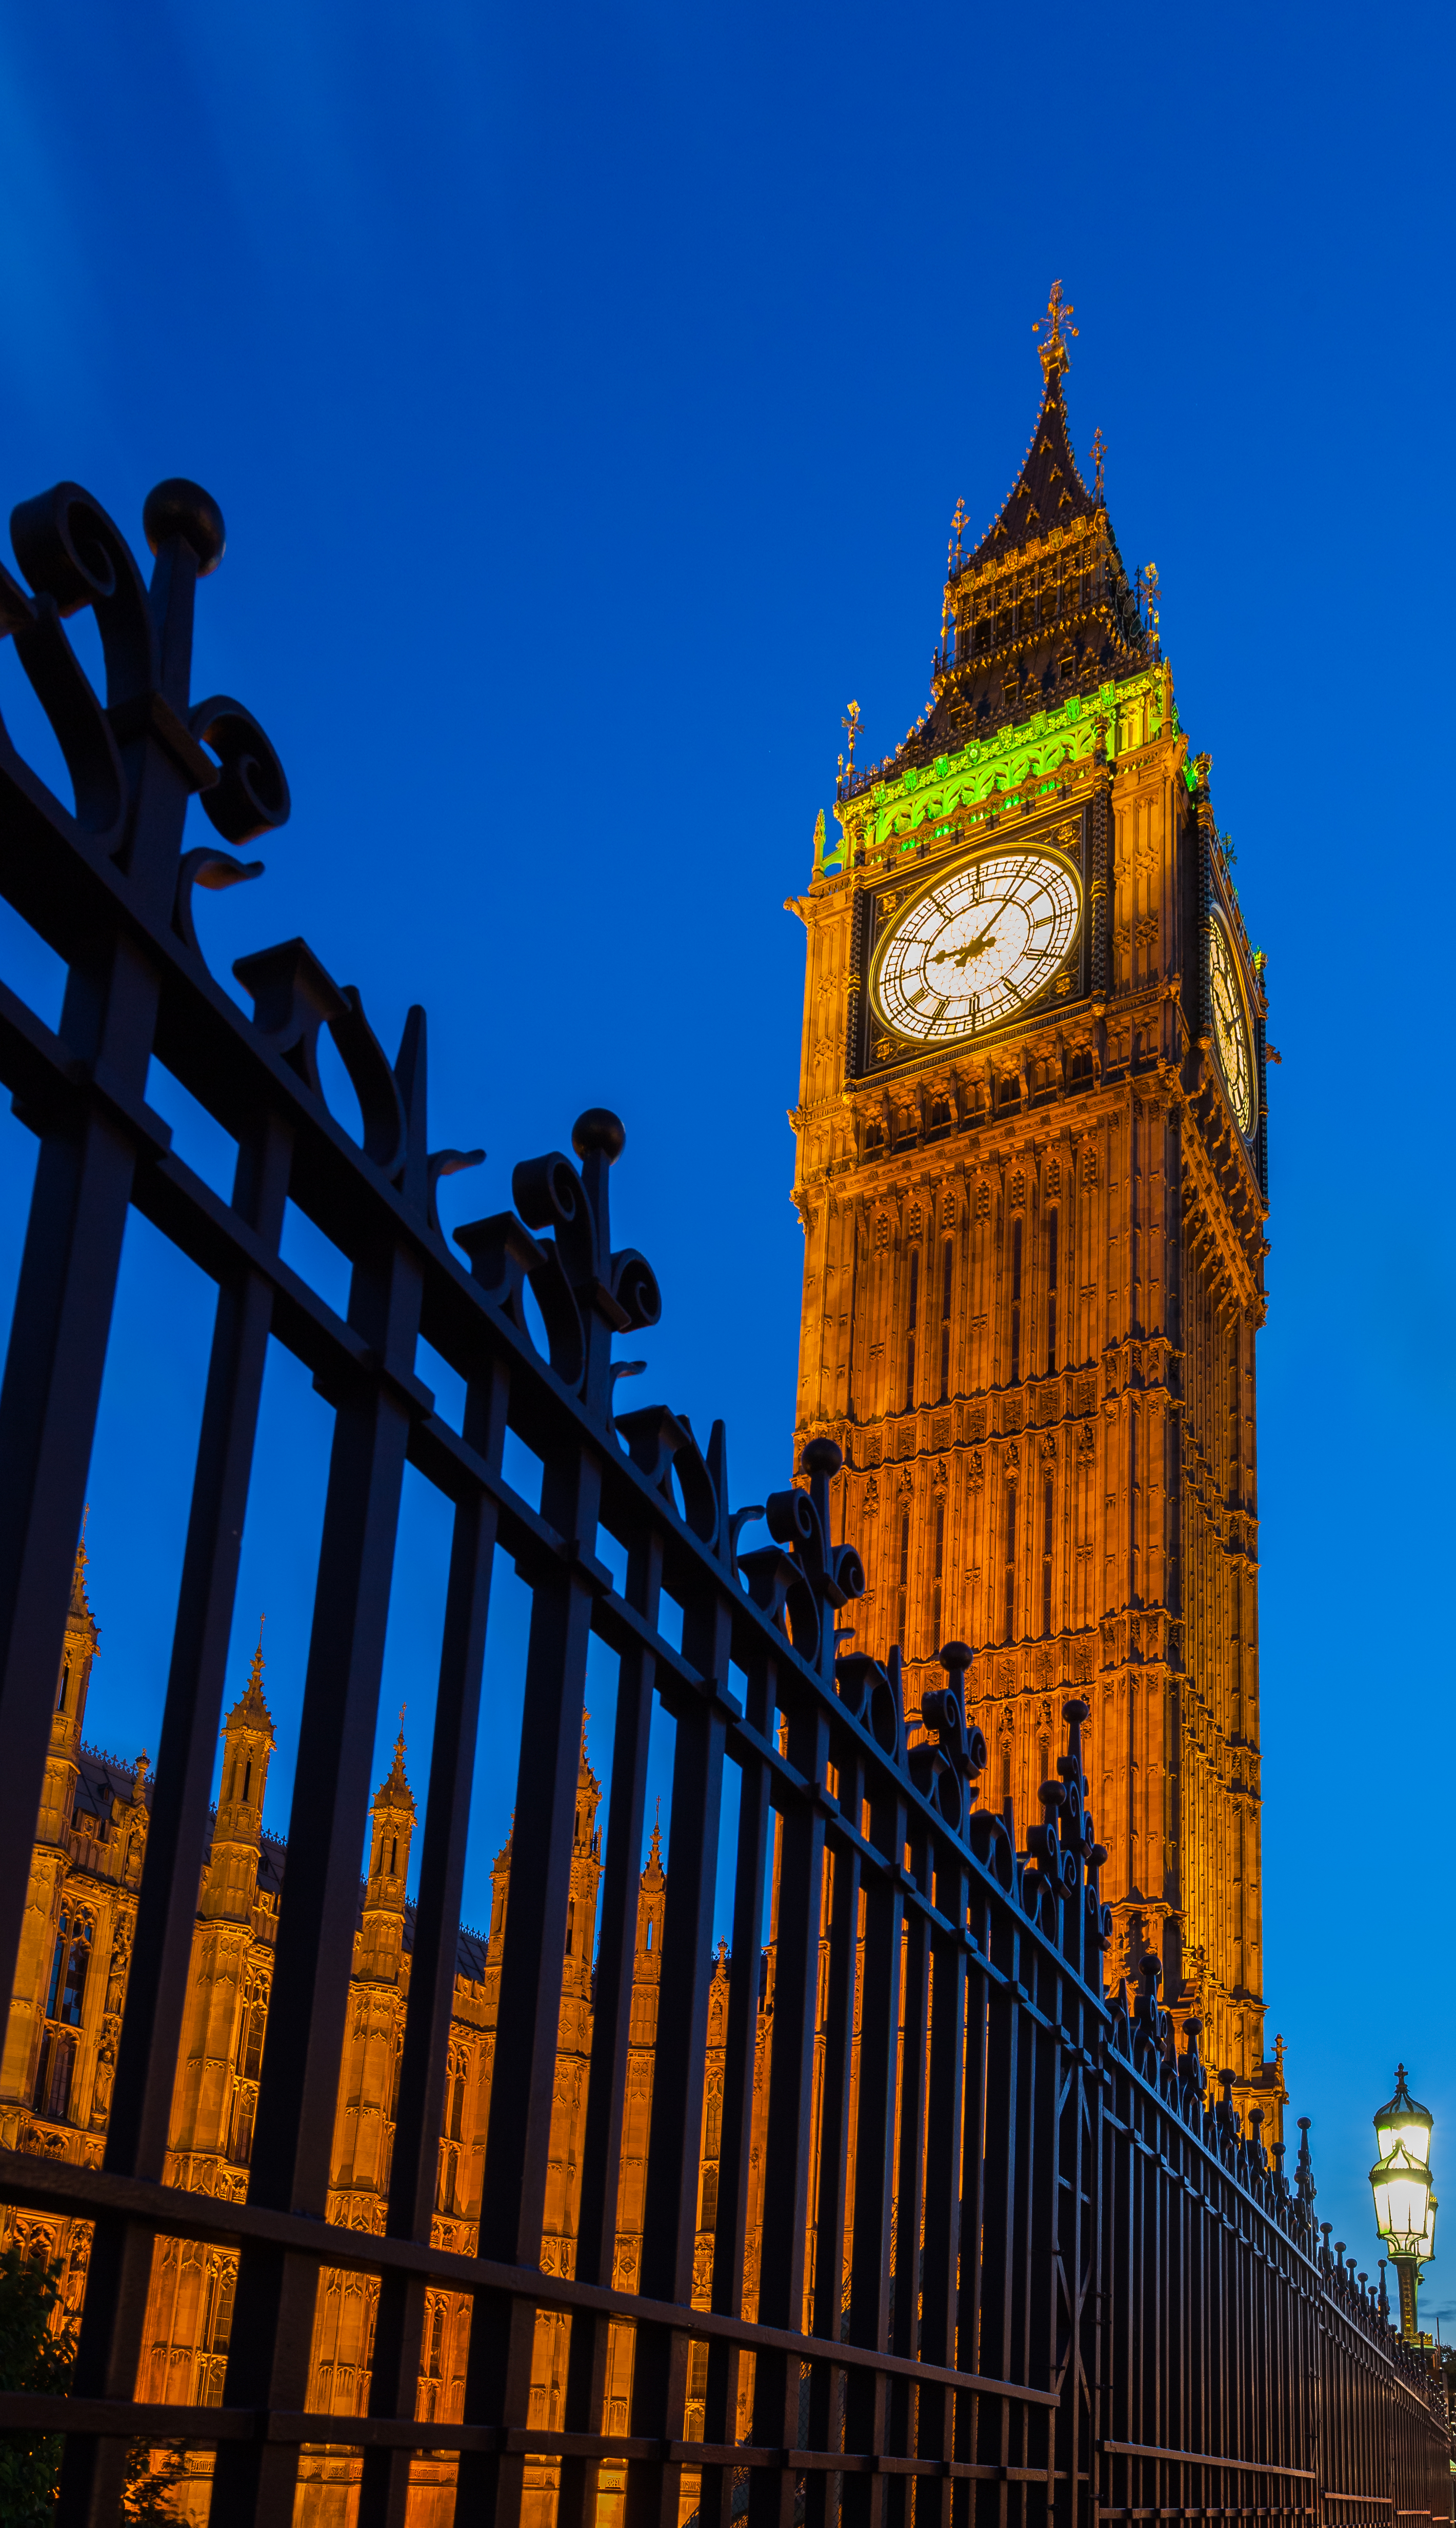 Famous Houses In Movies File Big Ben Londres Inglaterra 2014 08 11 Dd 200 Jpg